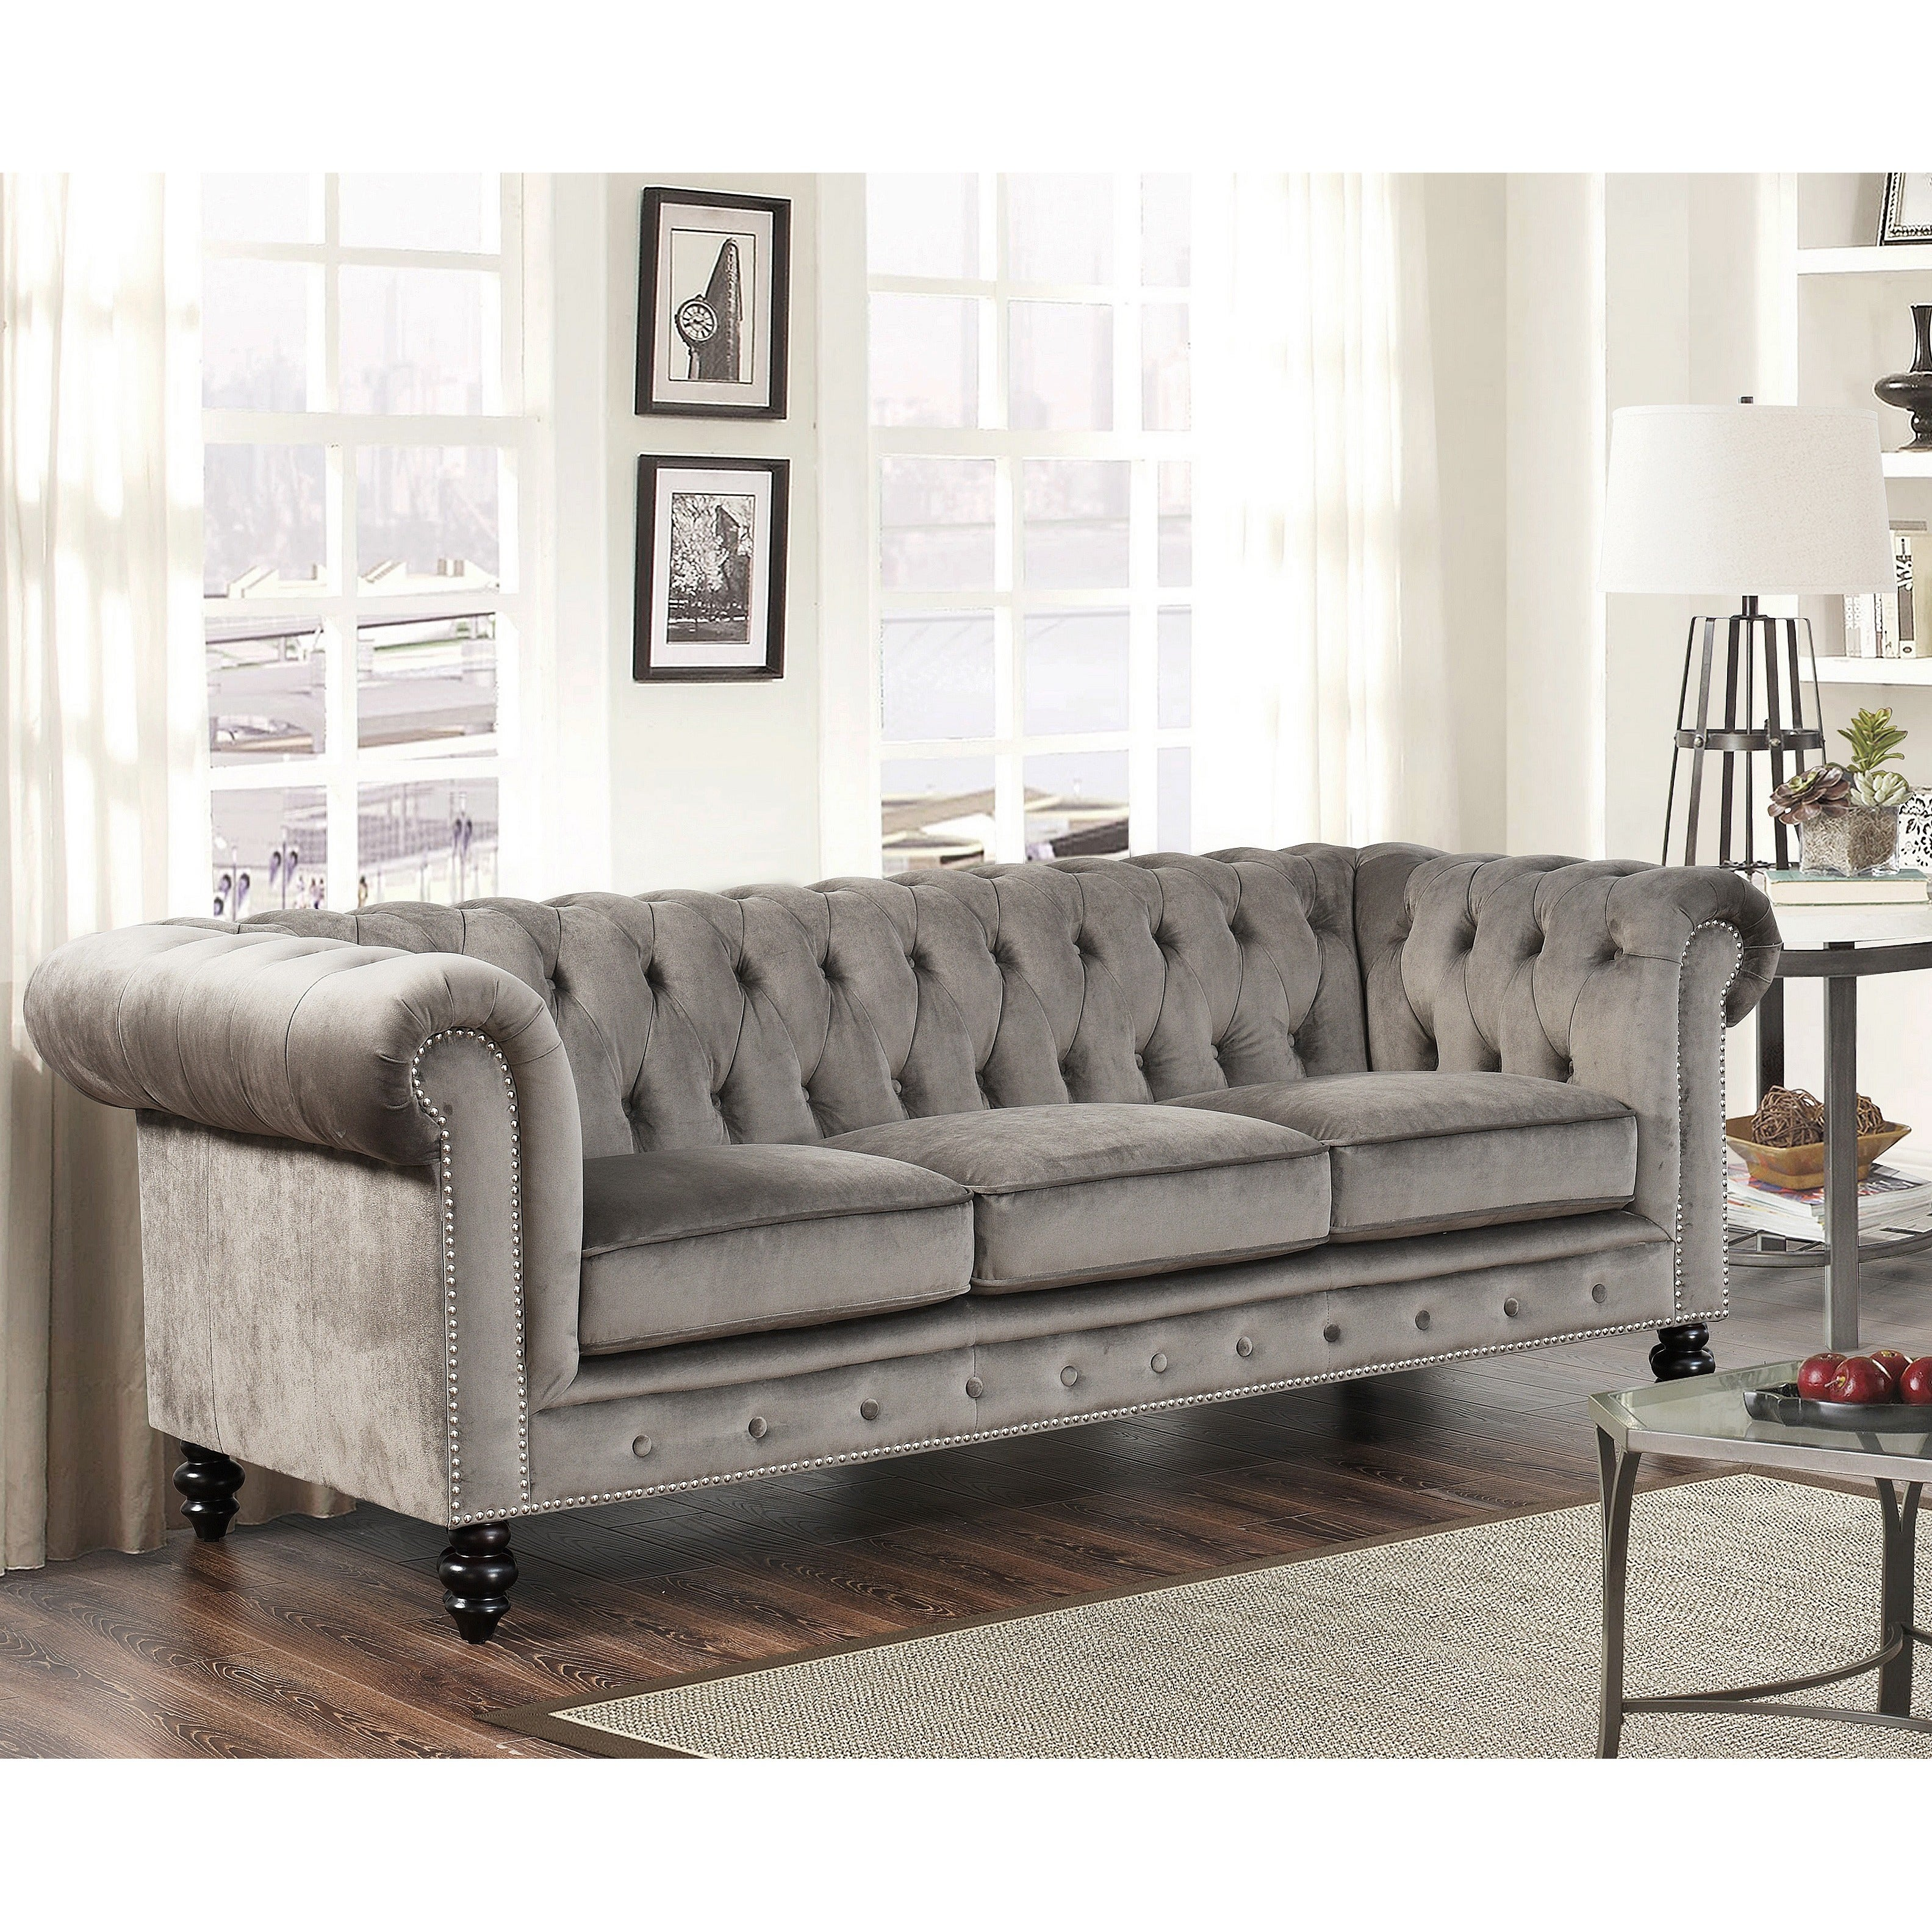 Exceptionnel Shop Abbyson Grand Chesterfield Grey Velvet 3 Piece Living Room Set   On  Sale   Free Shipping Today   Overstock.com   11808168